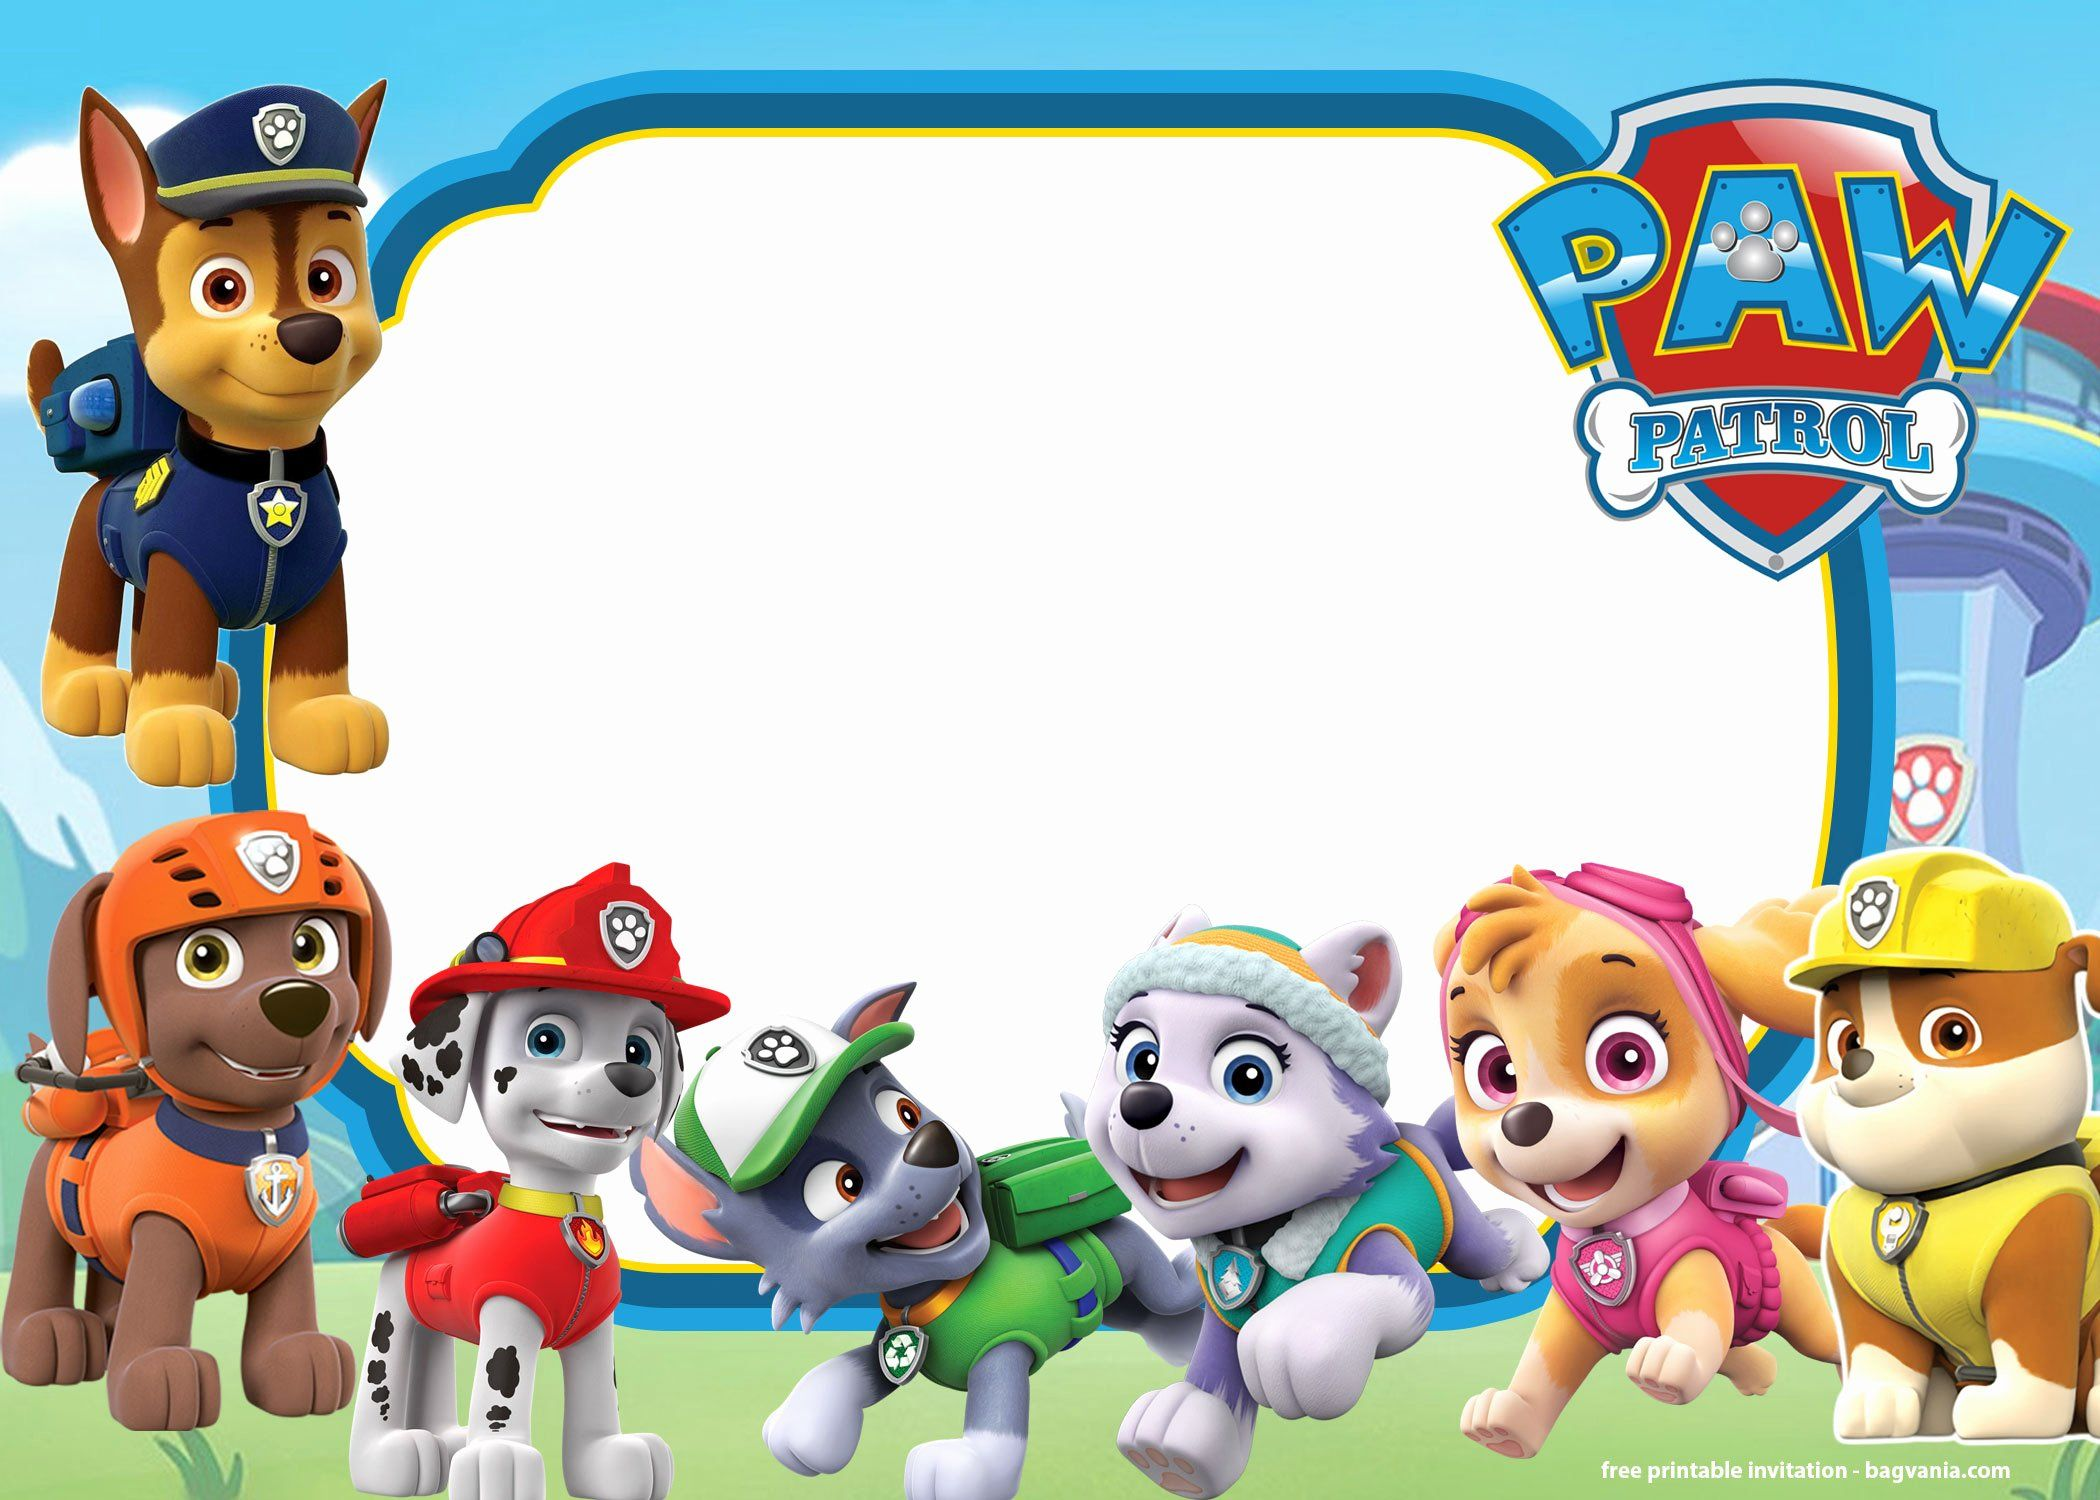 Pin By Fiki Febriyanto On Paw Patrol Party 2 In 2020 Paw Patrol Party Invitations Paw Patrol Birthday Invitations Paw Patrol Invitations